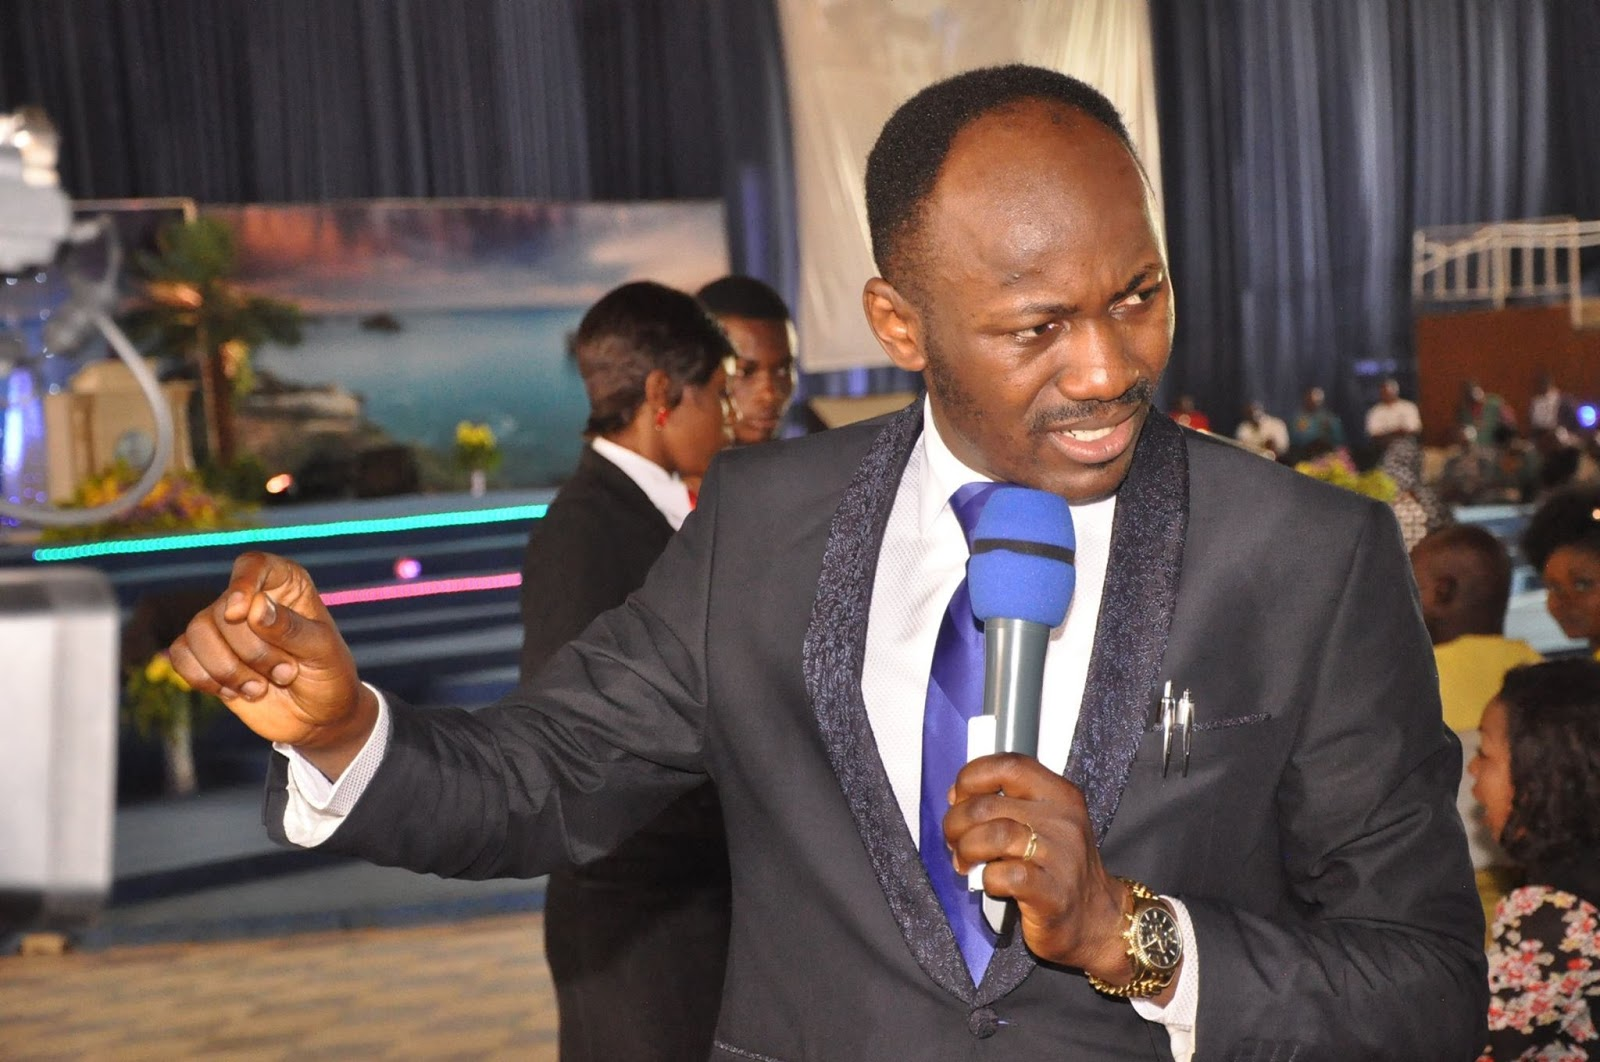 Apostle Suleman speaks on the Manchester Attack ''Terrorists are losers...